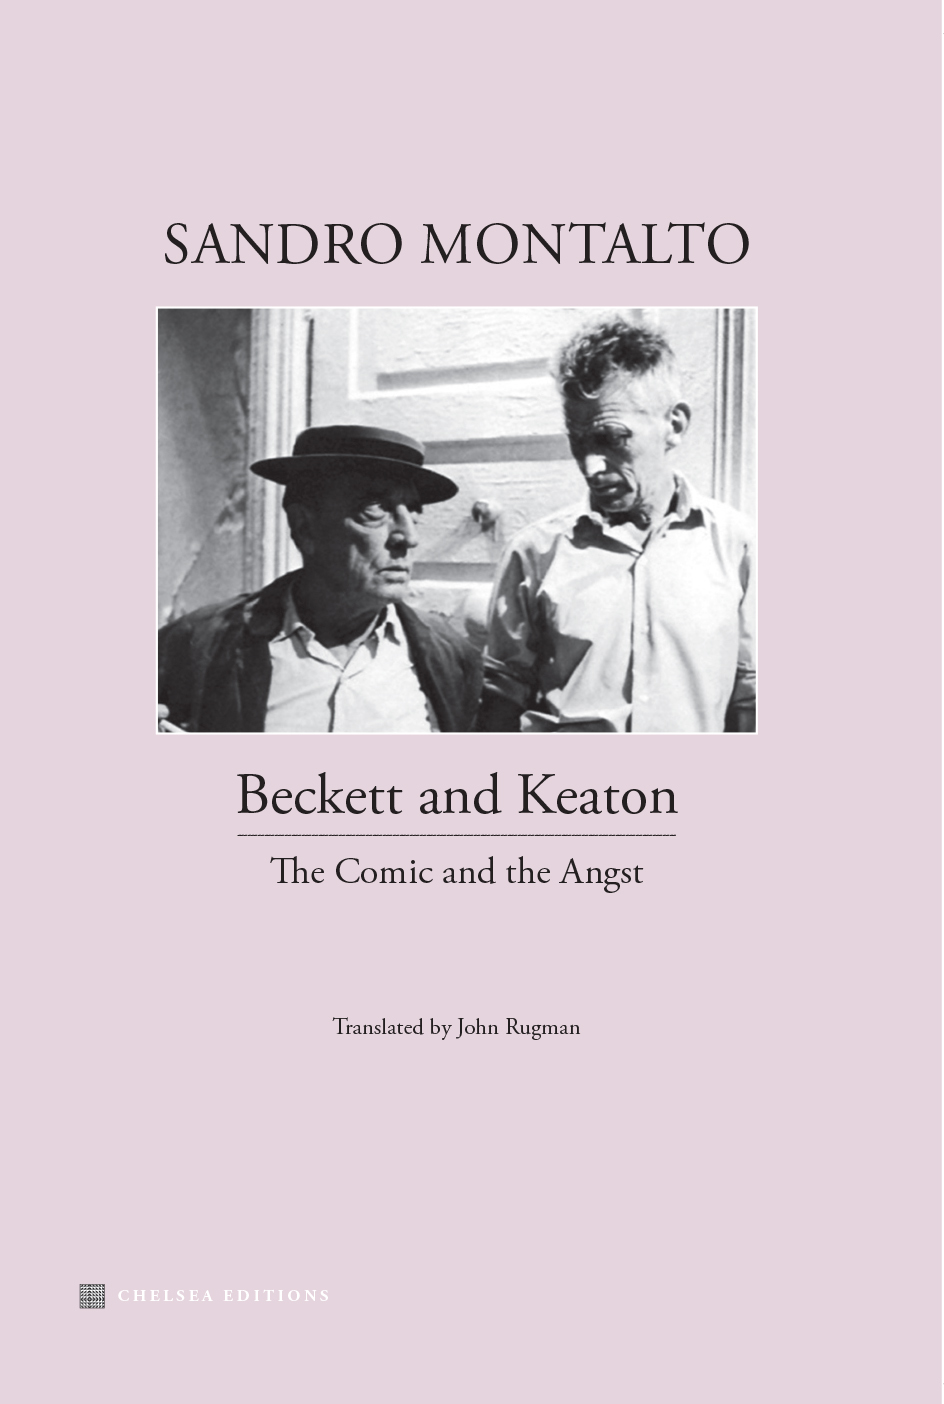 Beckett and Keaton: The Comic and the Angst/Beckett e Keaton: il comico e l'angoscia di esistere